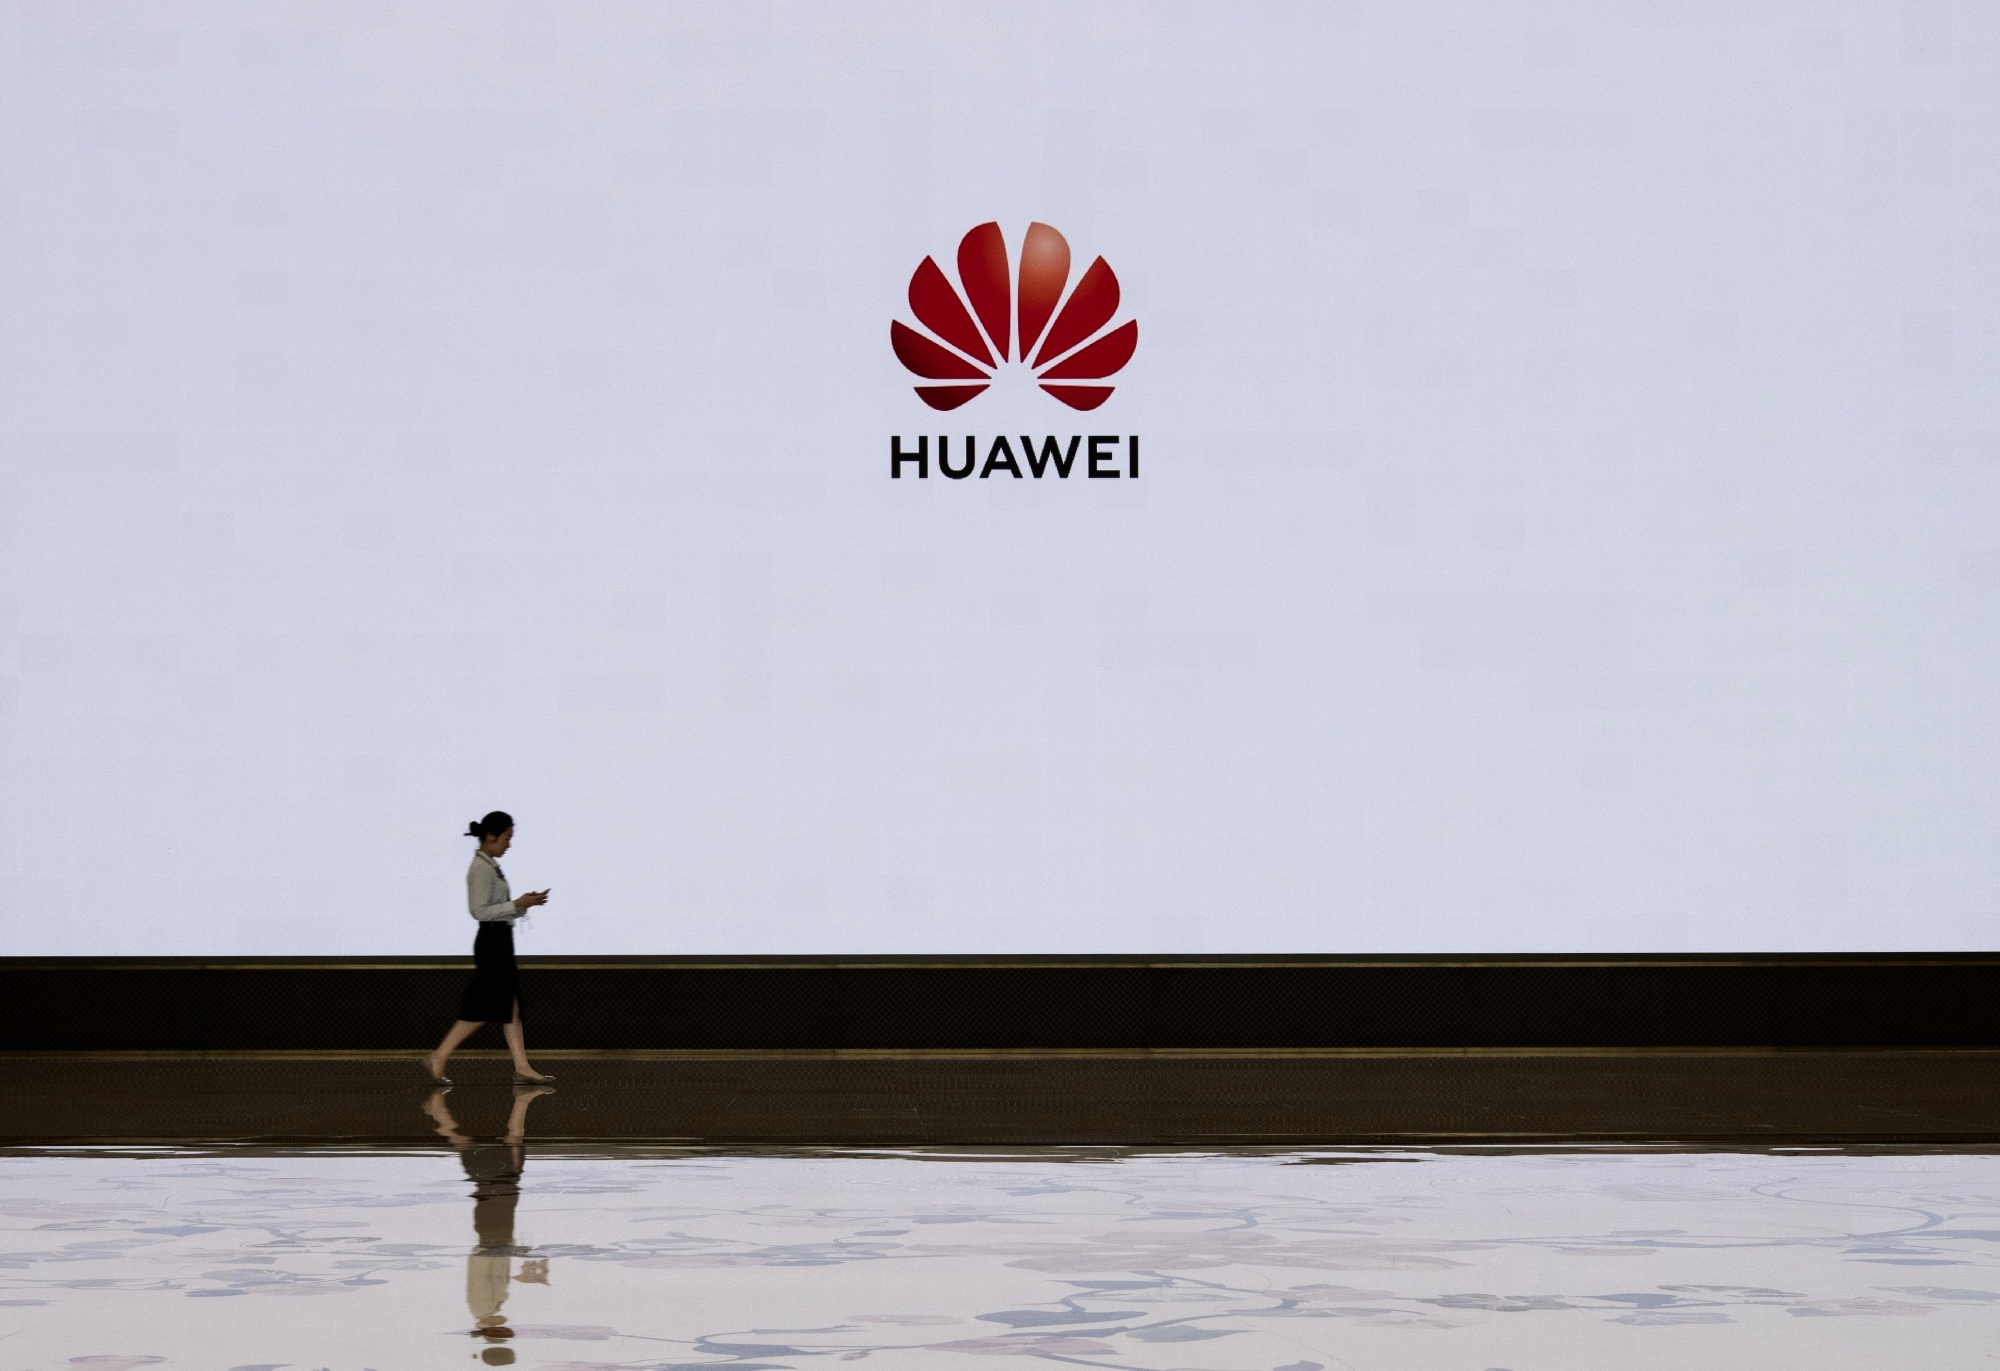 Microsoft Pulls Huawei Products From One of Its Cloud Server